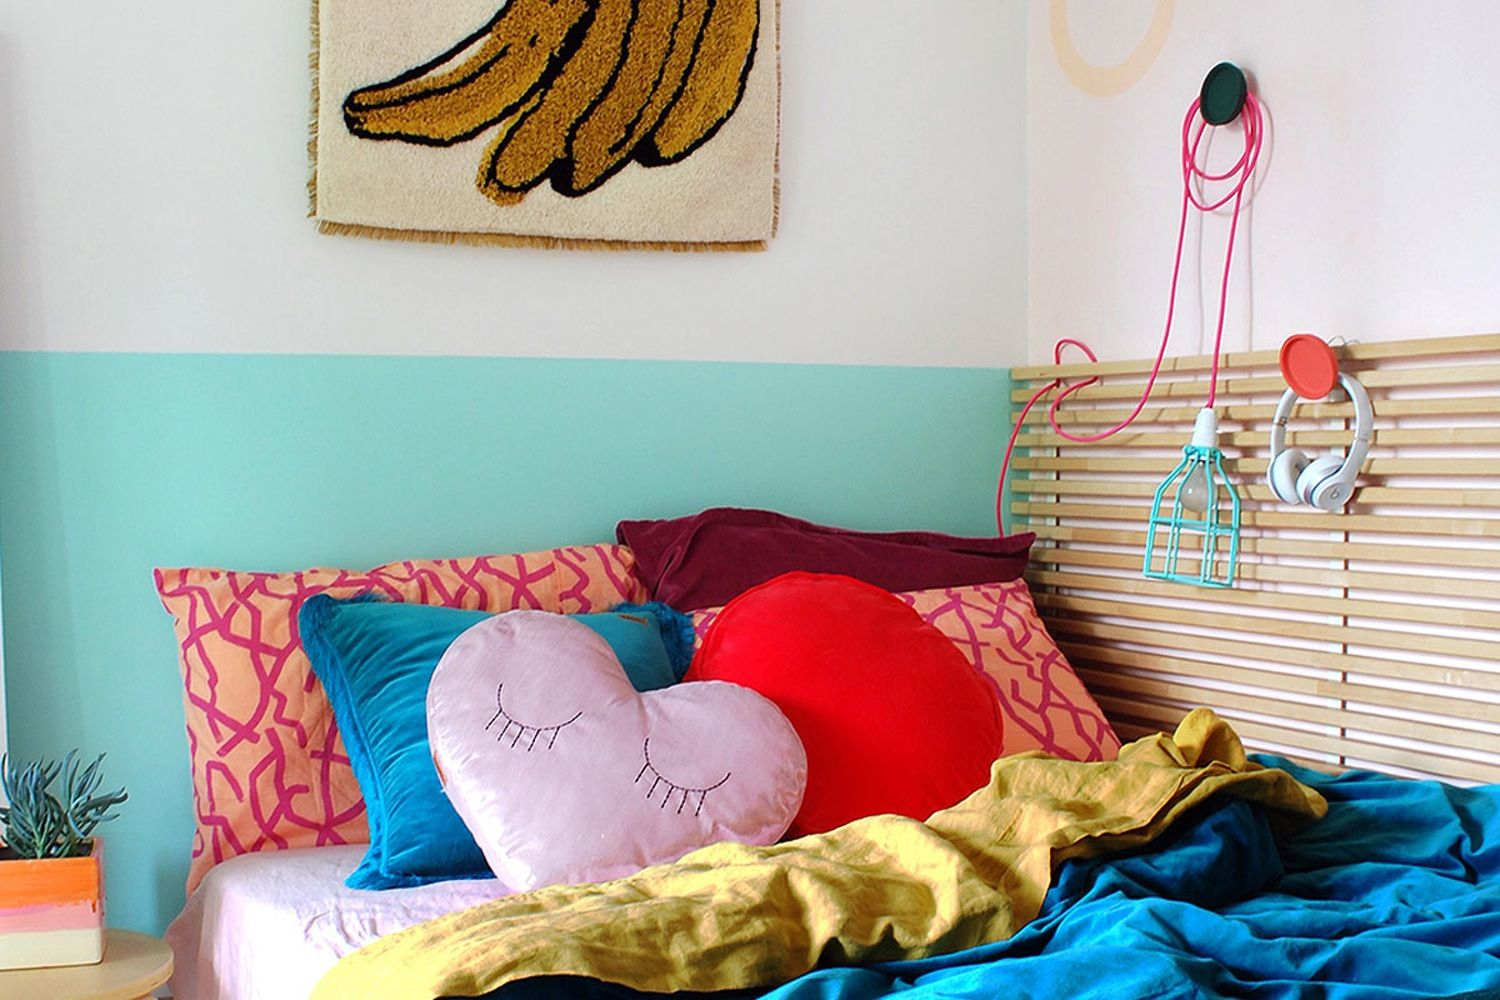 Smart U0026 Stylish Design Tips From An Extremely Tiny Bedroom U2014 My Room